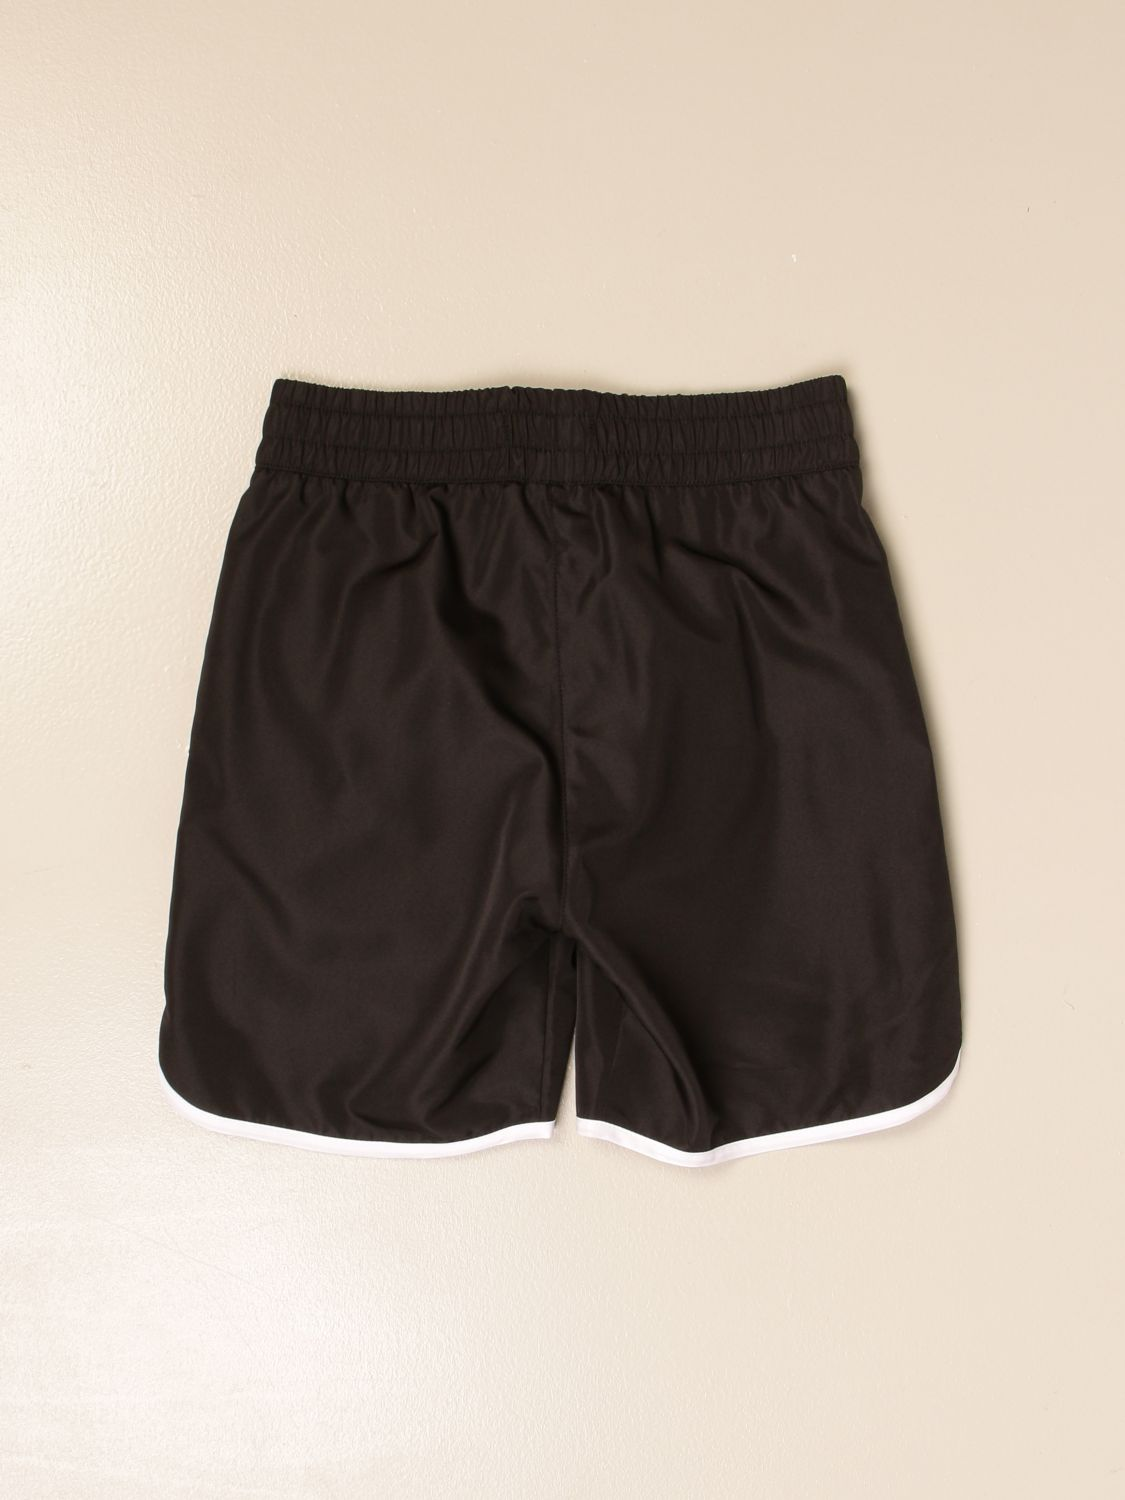 Swimsuit Givenchy: Givenchy boxer swimsuit with logoed bands black 2